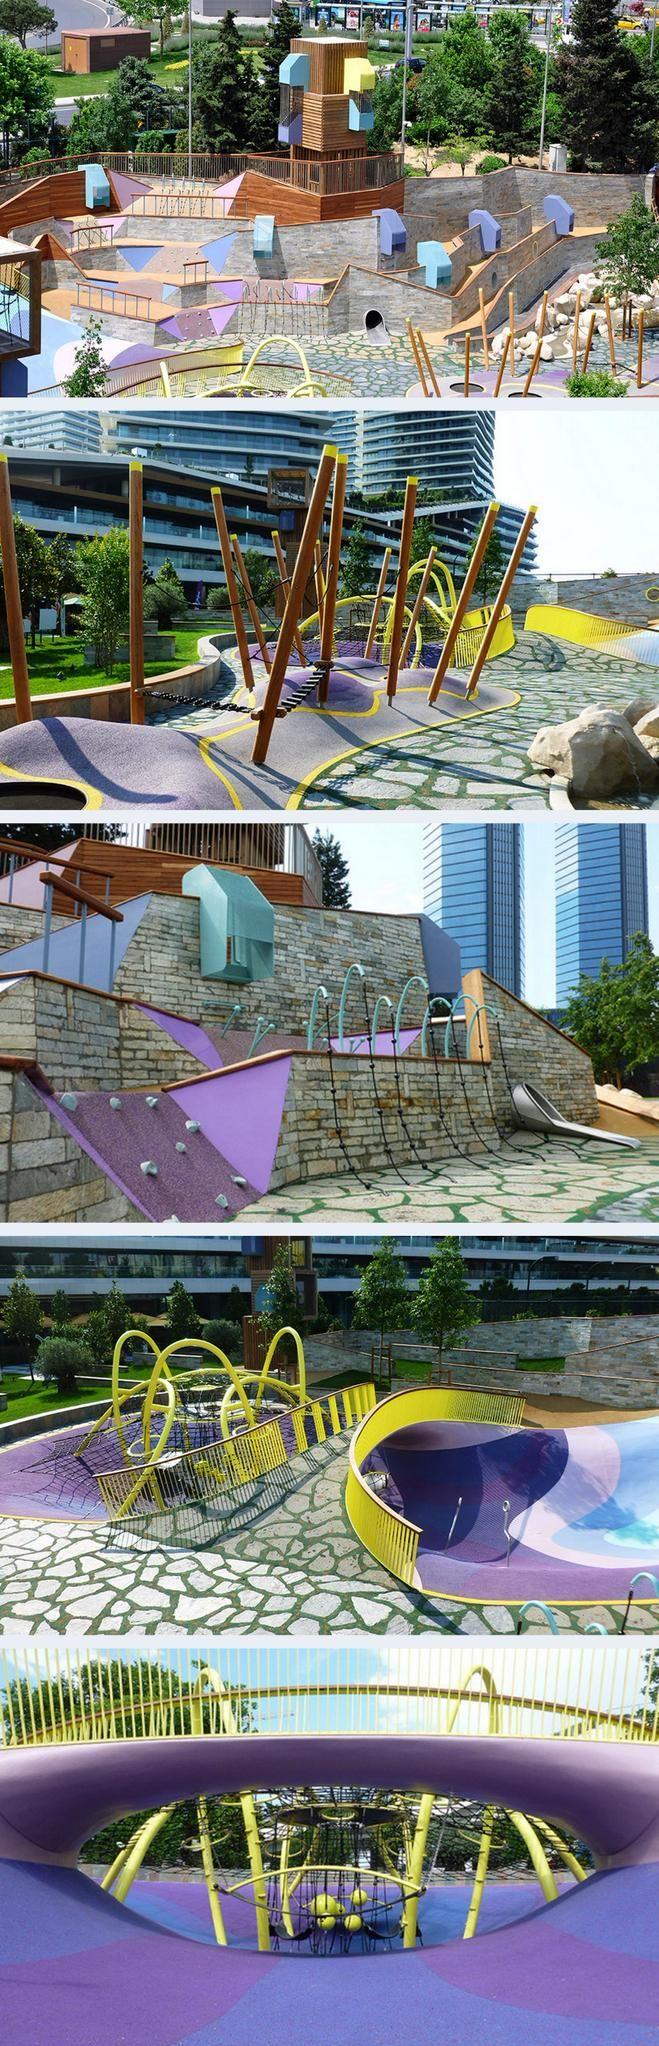 1000 Images About Landscape Architecture On Pinterest